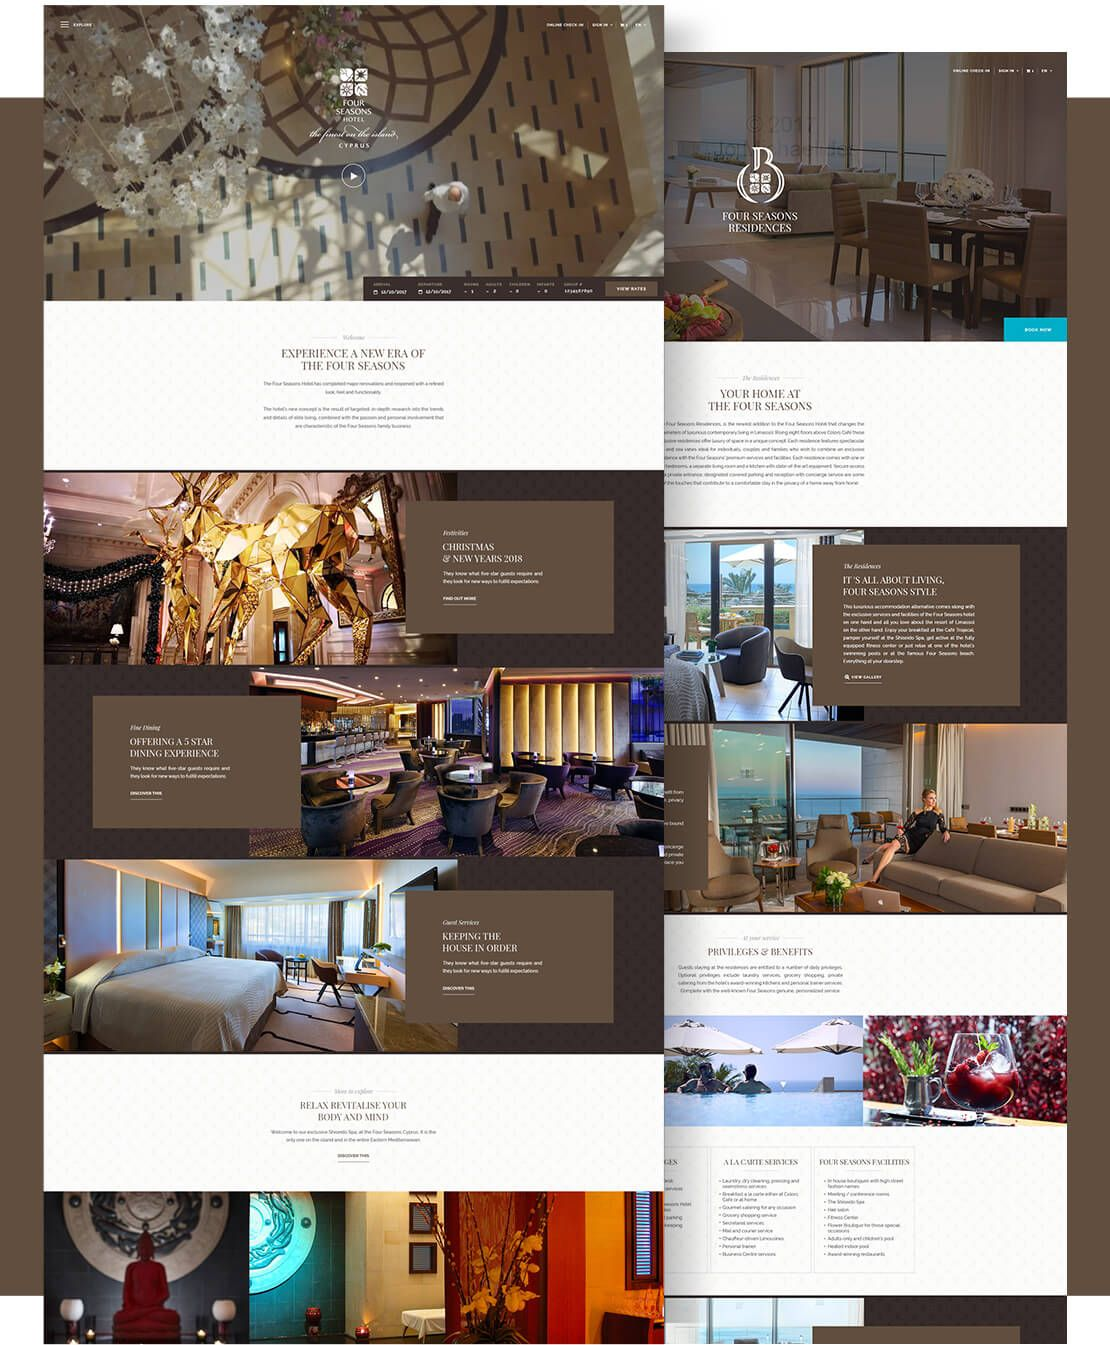 The Four Seasons Hotel Website Design In 2020 Hotel Website Design Elegant Website Design Website Design